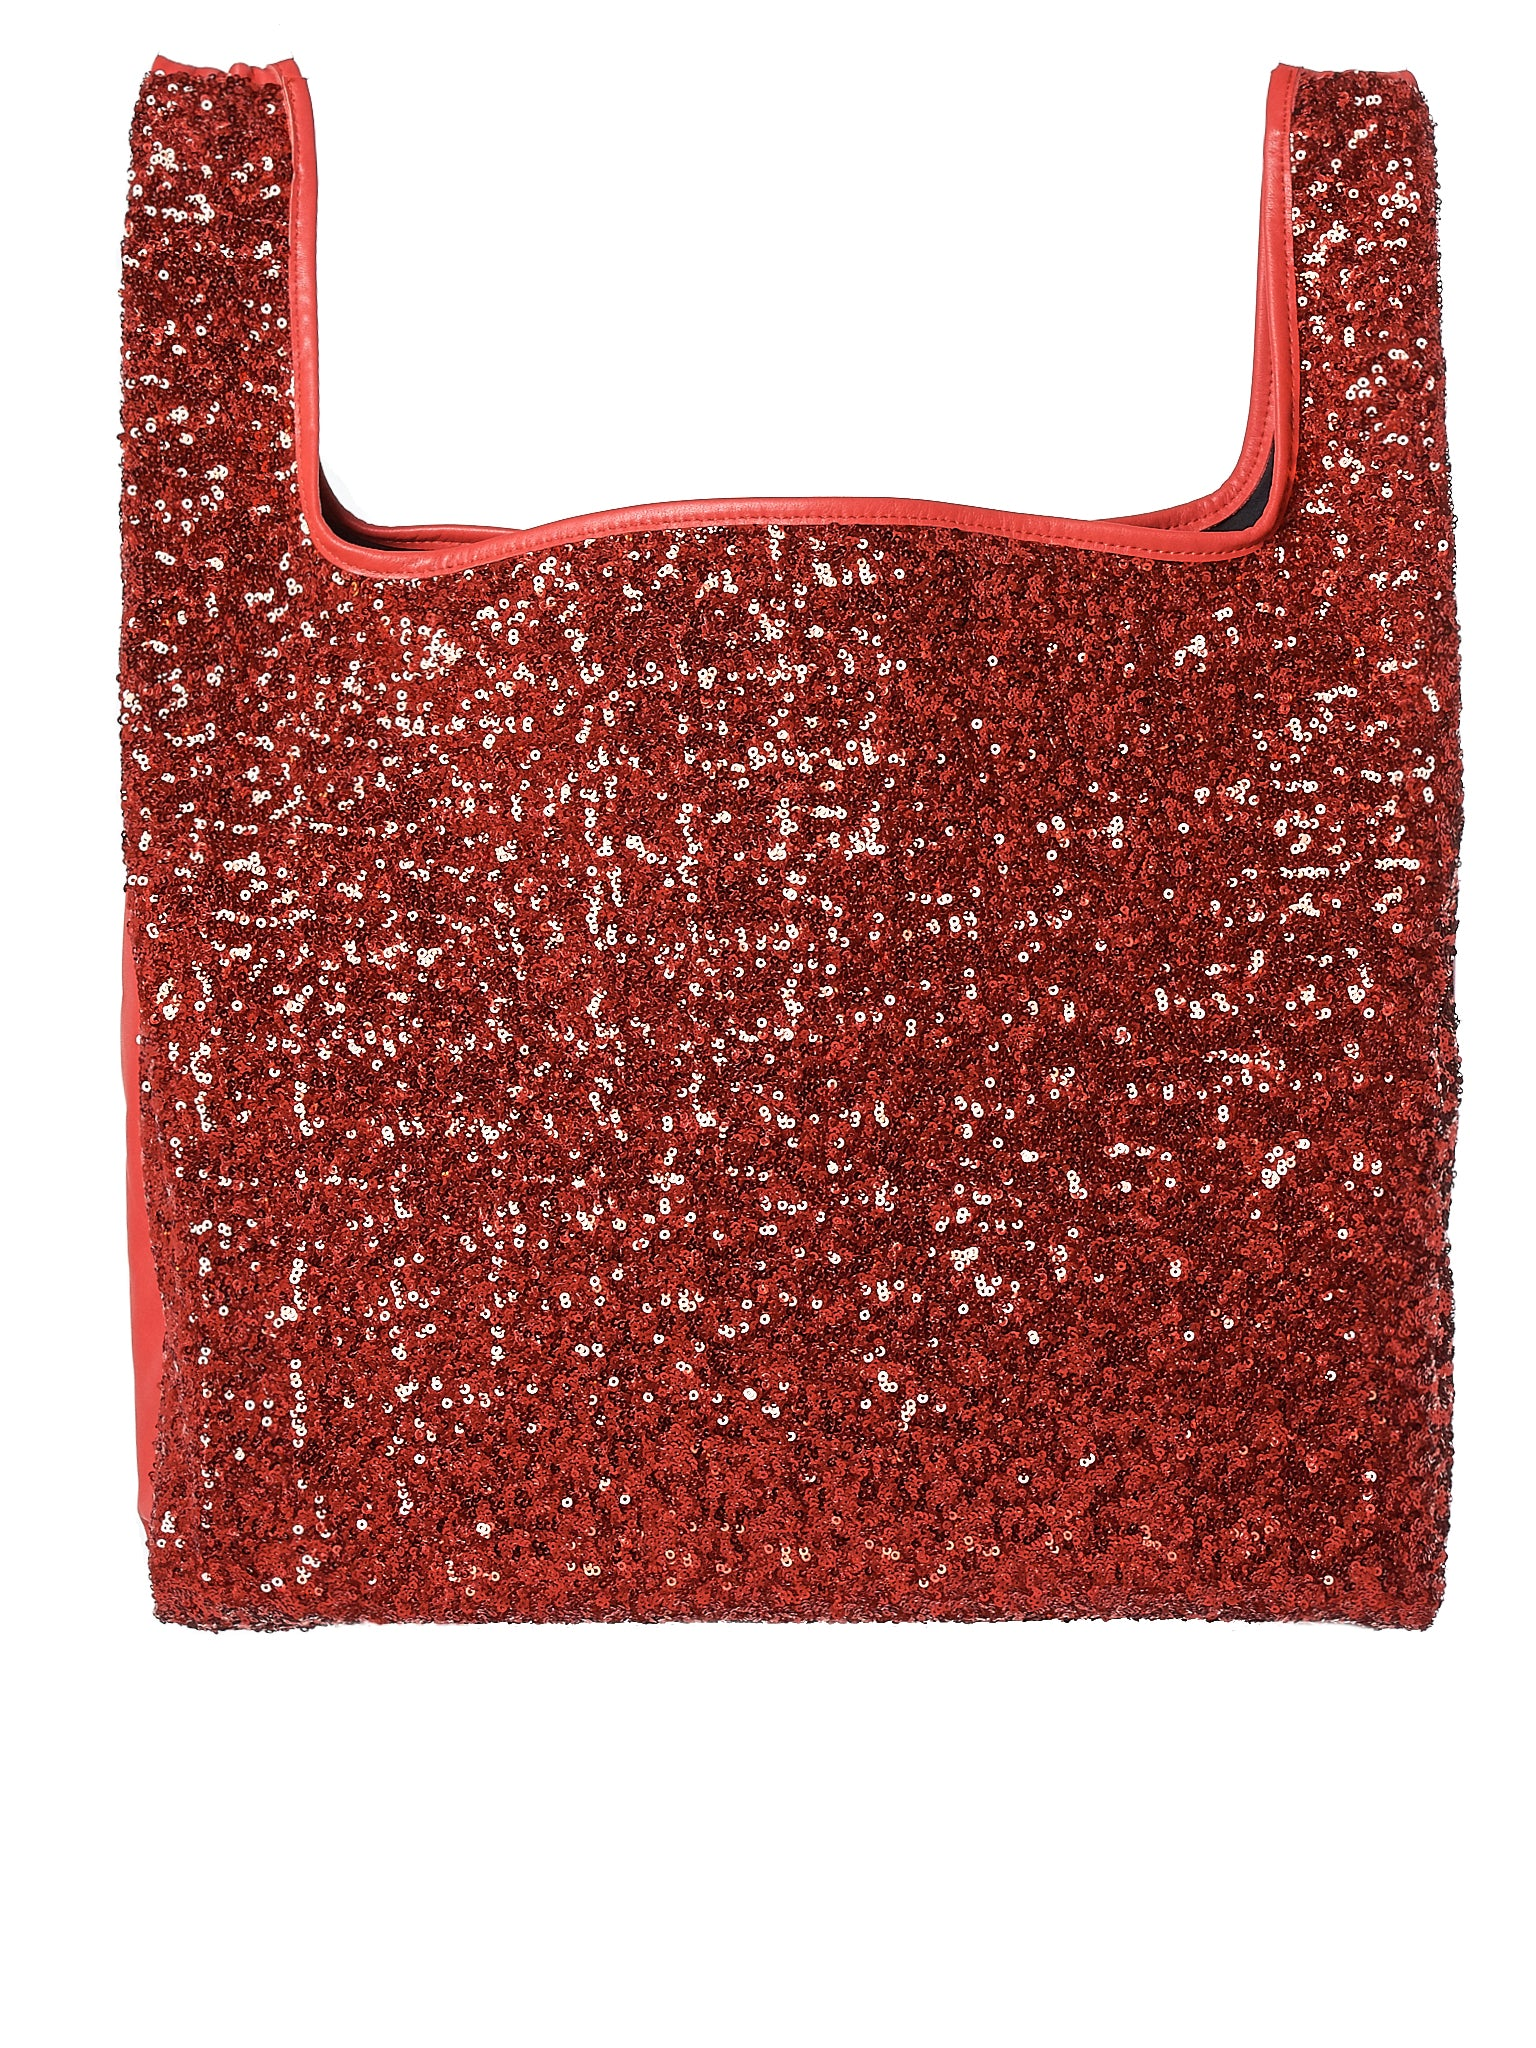 Sequined Tote Bag (JB-K201-051-4-RED)